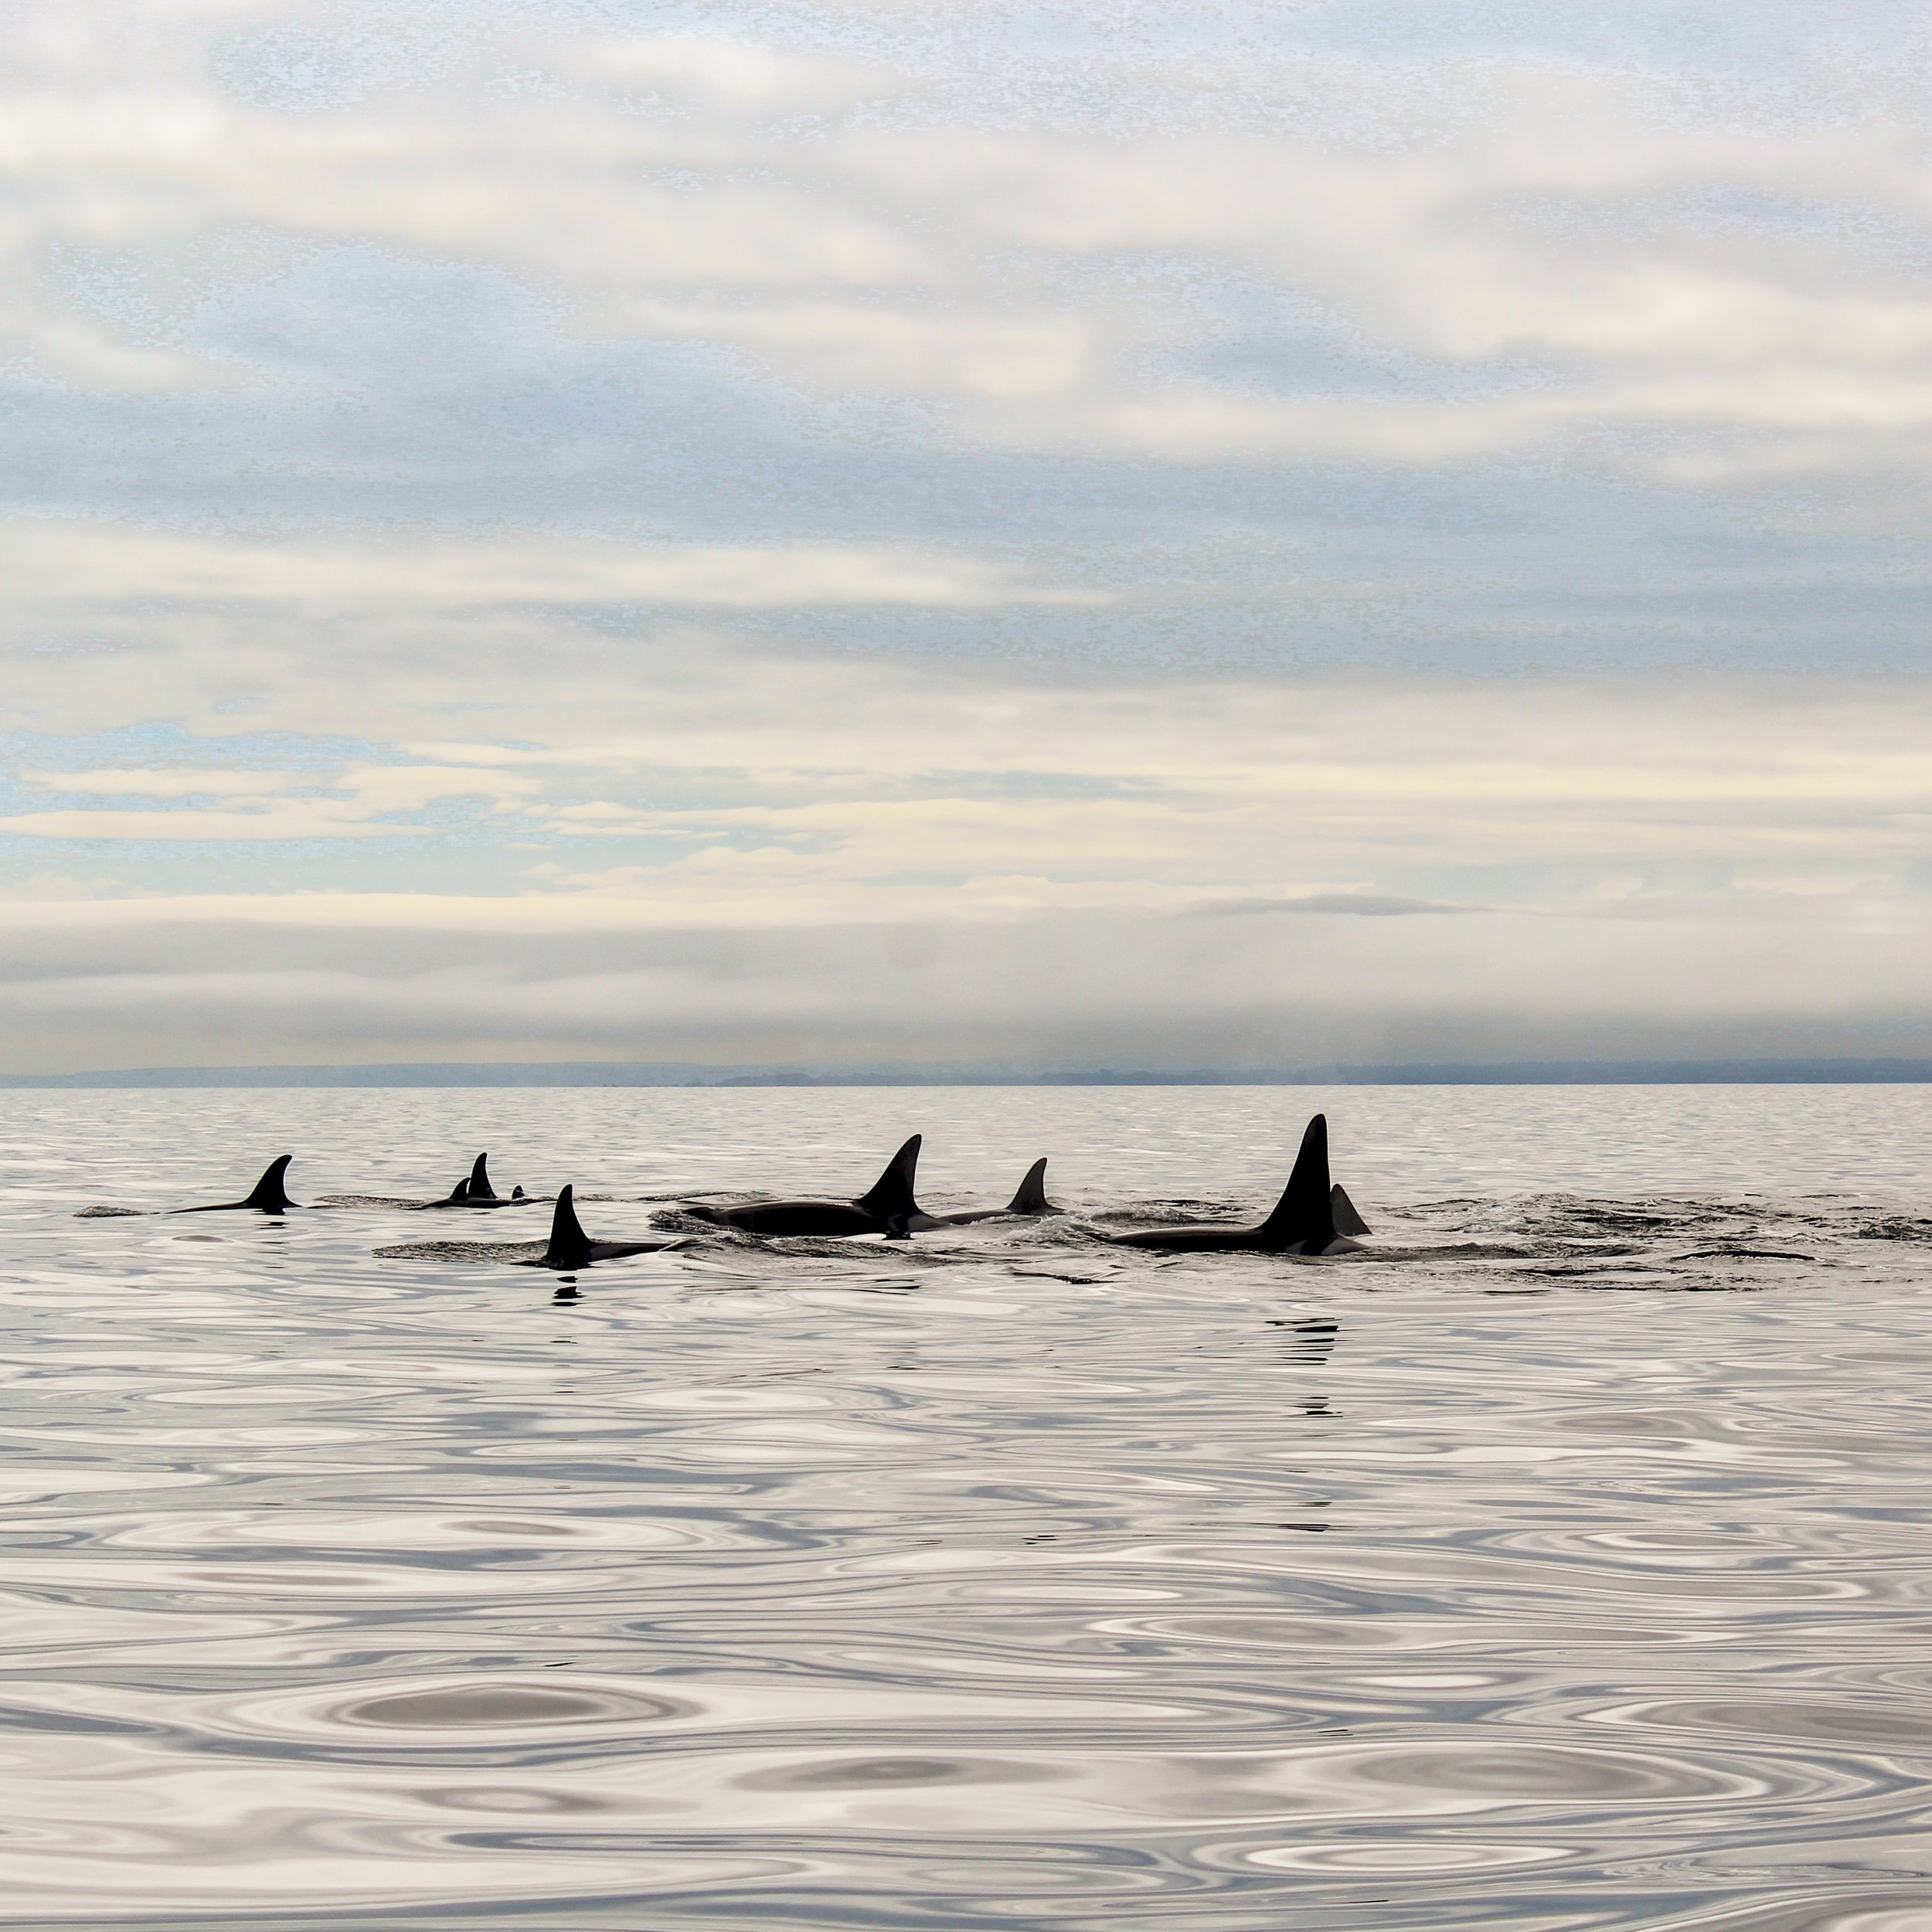 A pod of Orca whales spotted during our whale watching tour